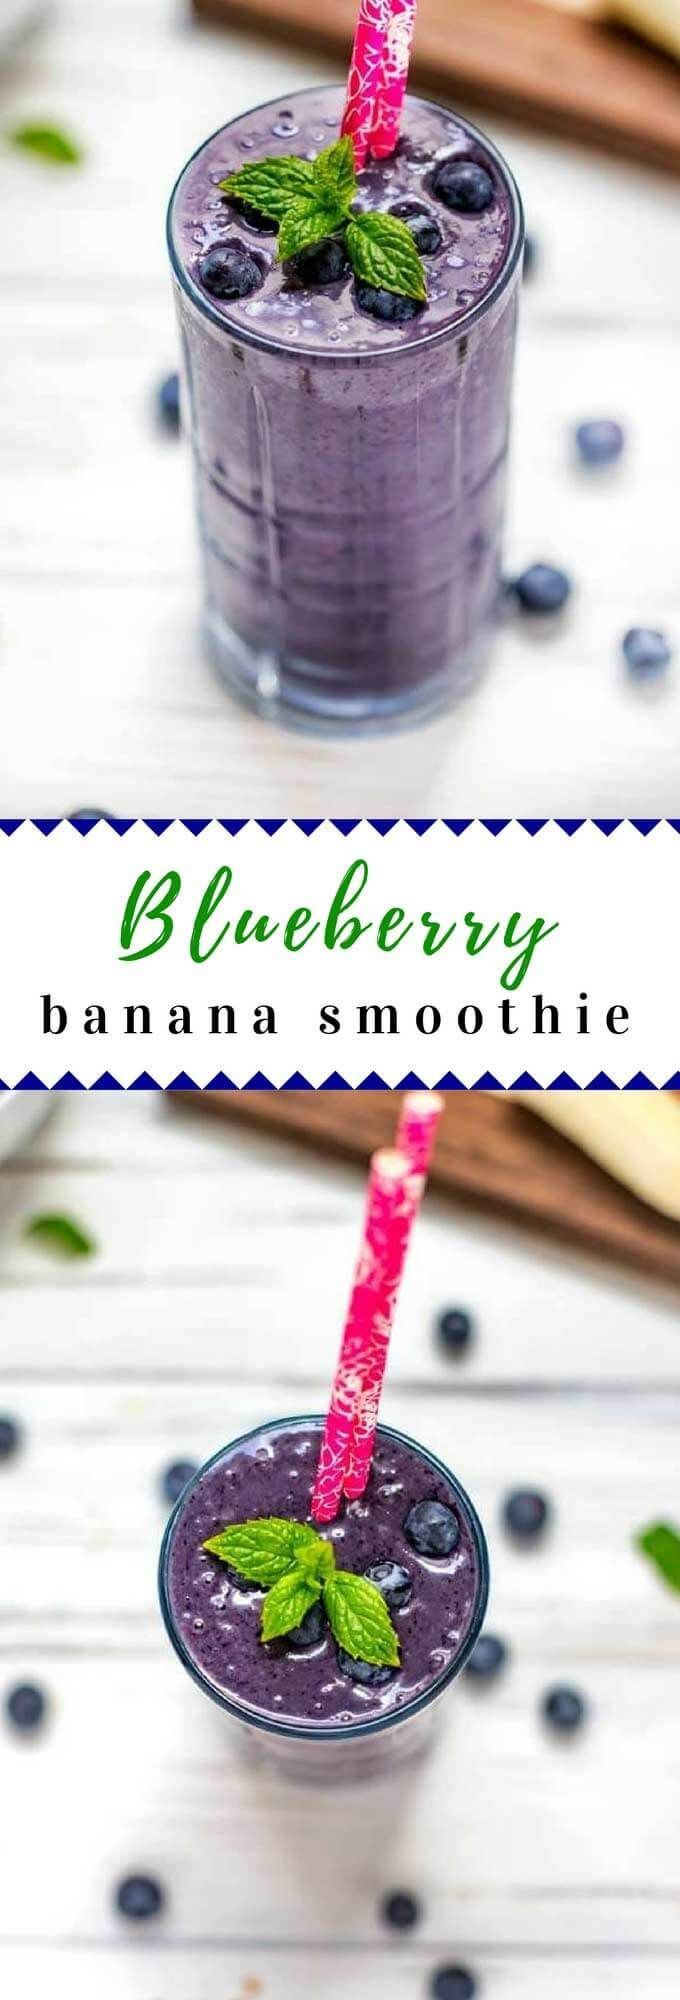 This Blueberry Banana Smoothie without yogurt is a great way way to start your day!  With almond milk and vegan protein powder, this dairy free smoothie is one even the kids will love!  #vegan #smoothie #glutenfree #dairyfree via @wendypolisi